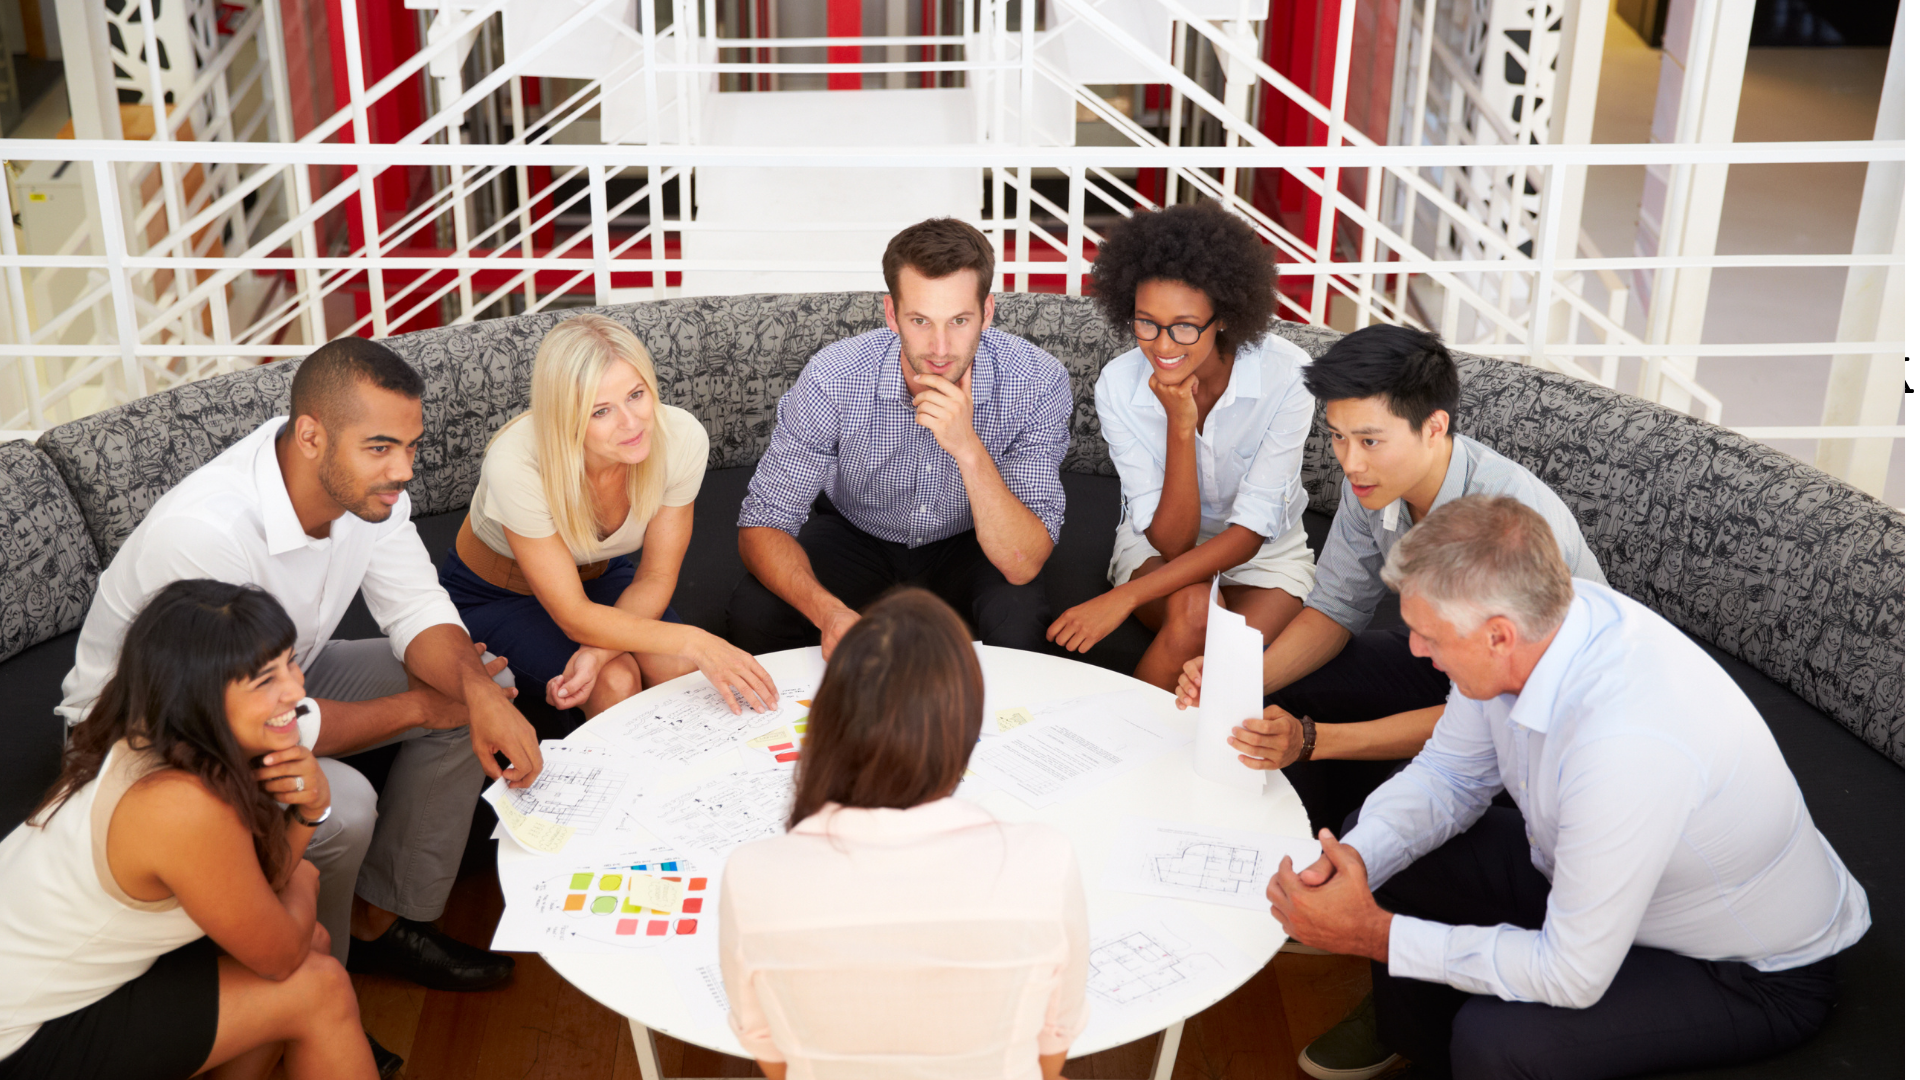 The image shows a group of adults sitting around a table listening intently to each other.